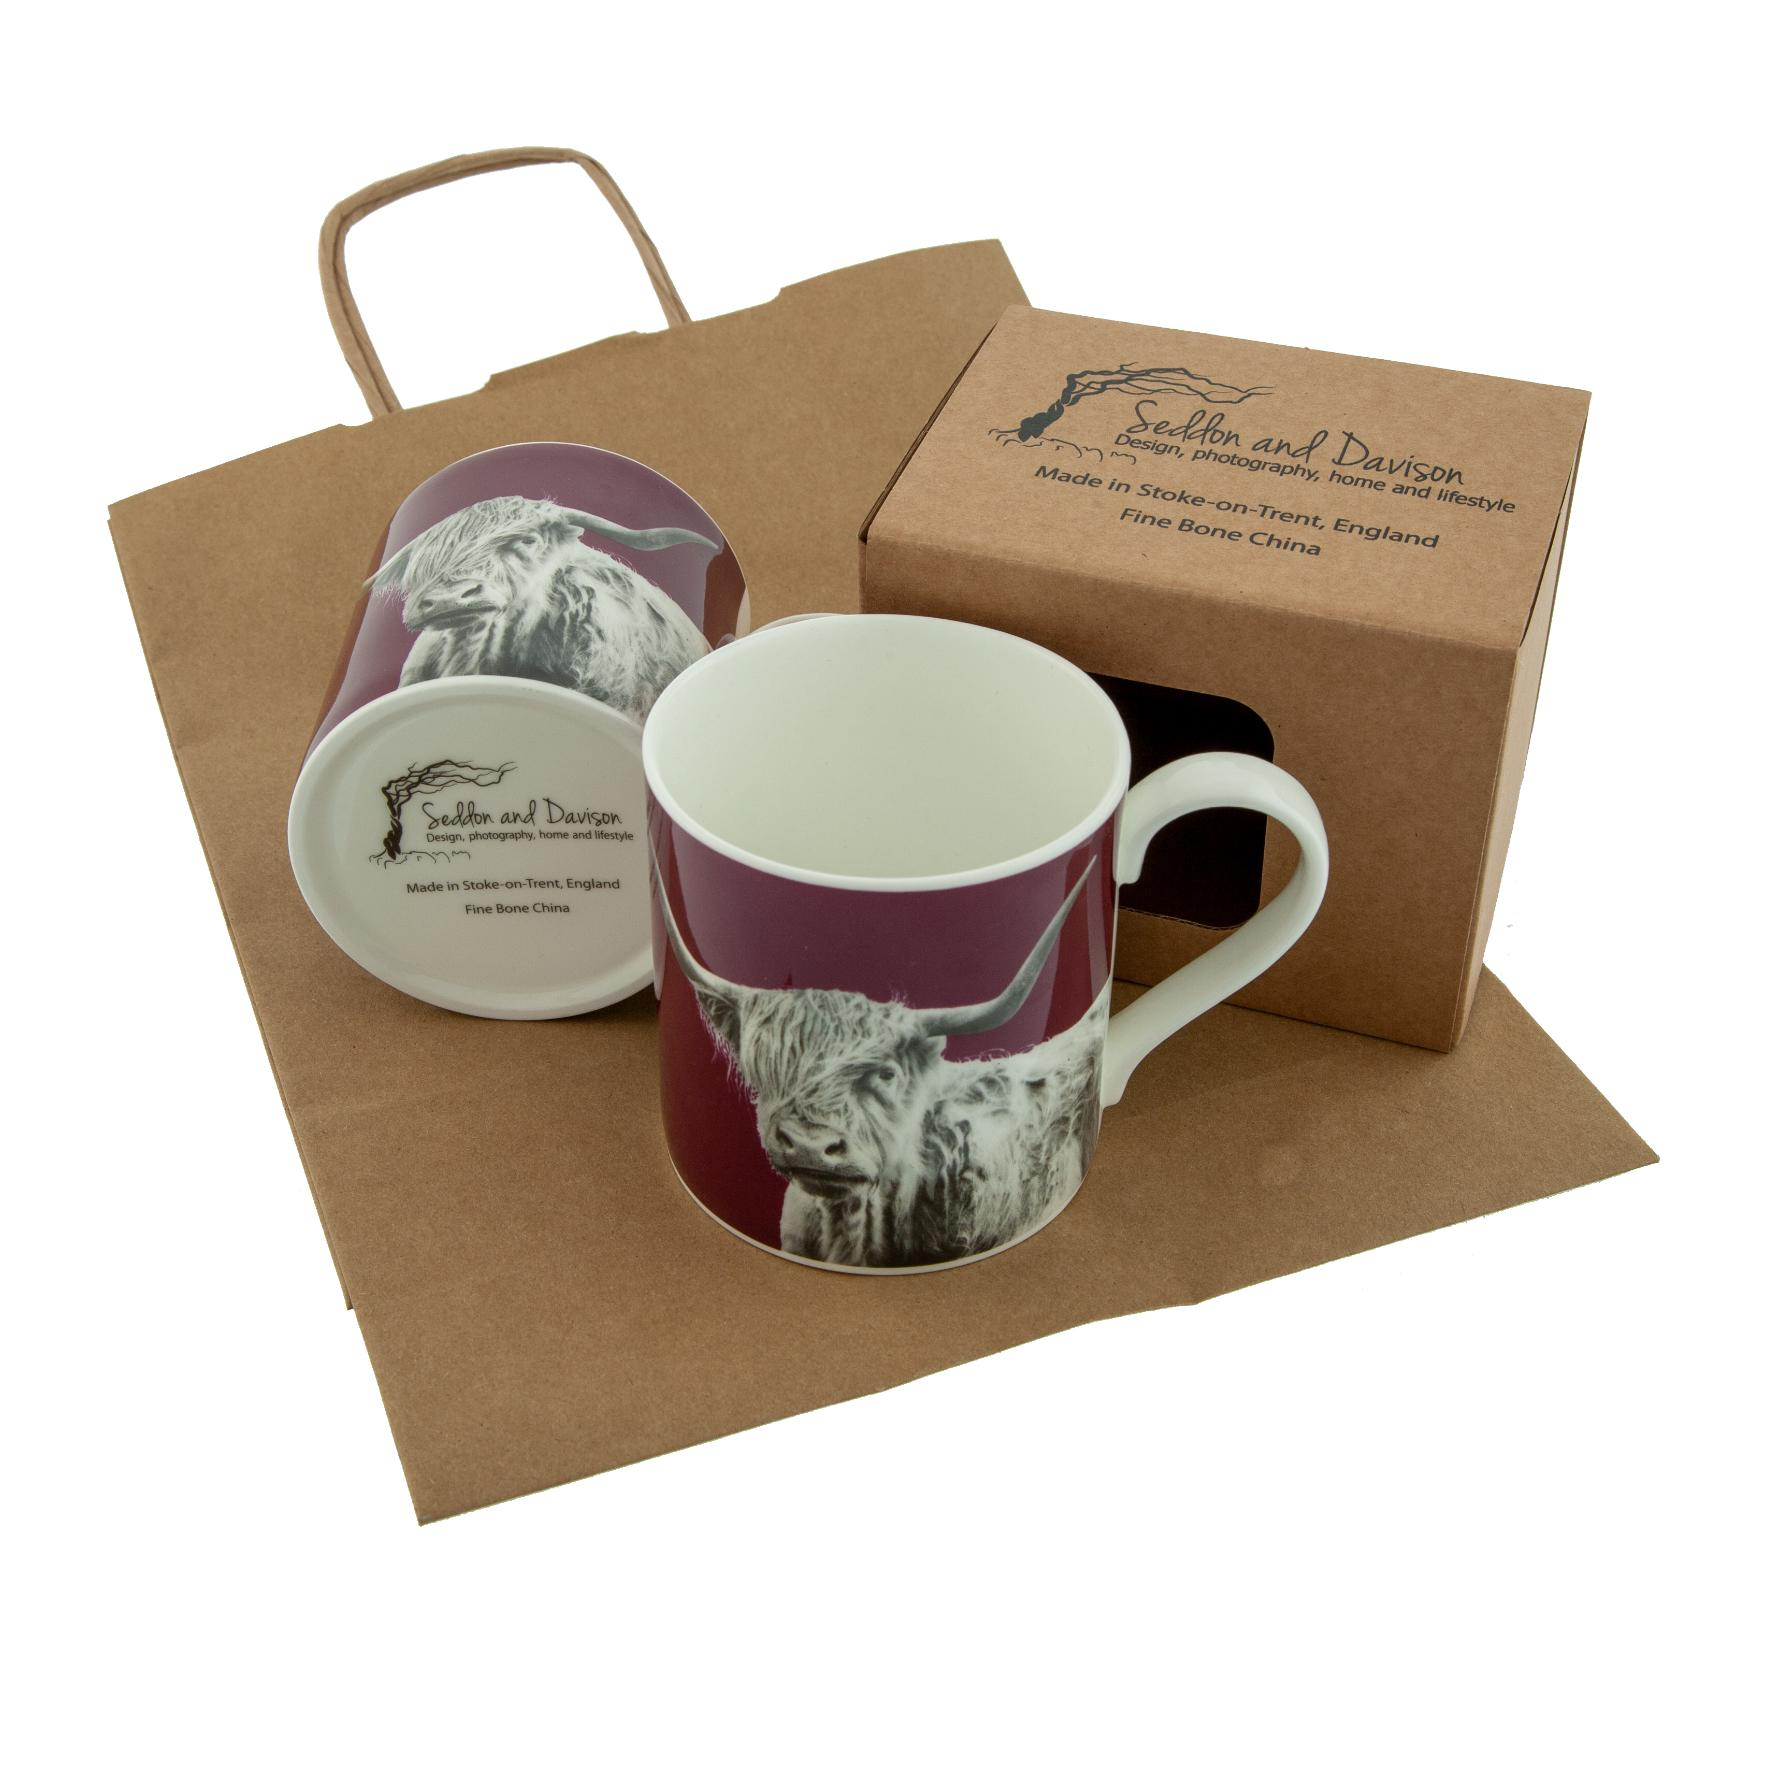 Shaggy Highland Cow Fine Bone China Mug Claret